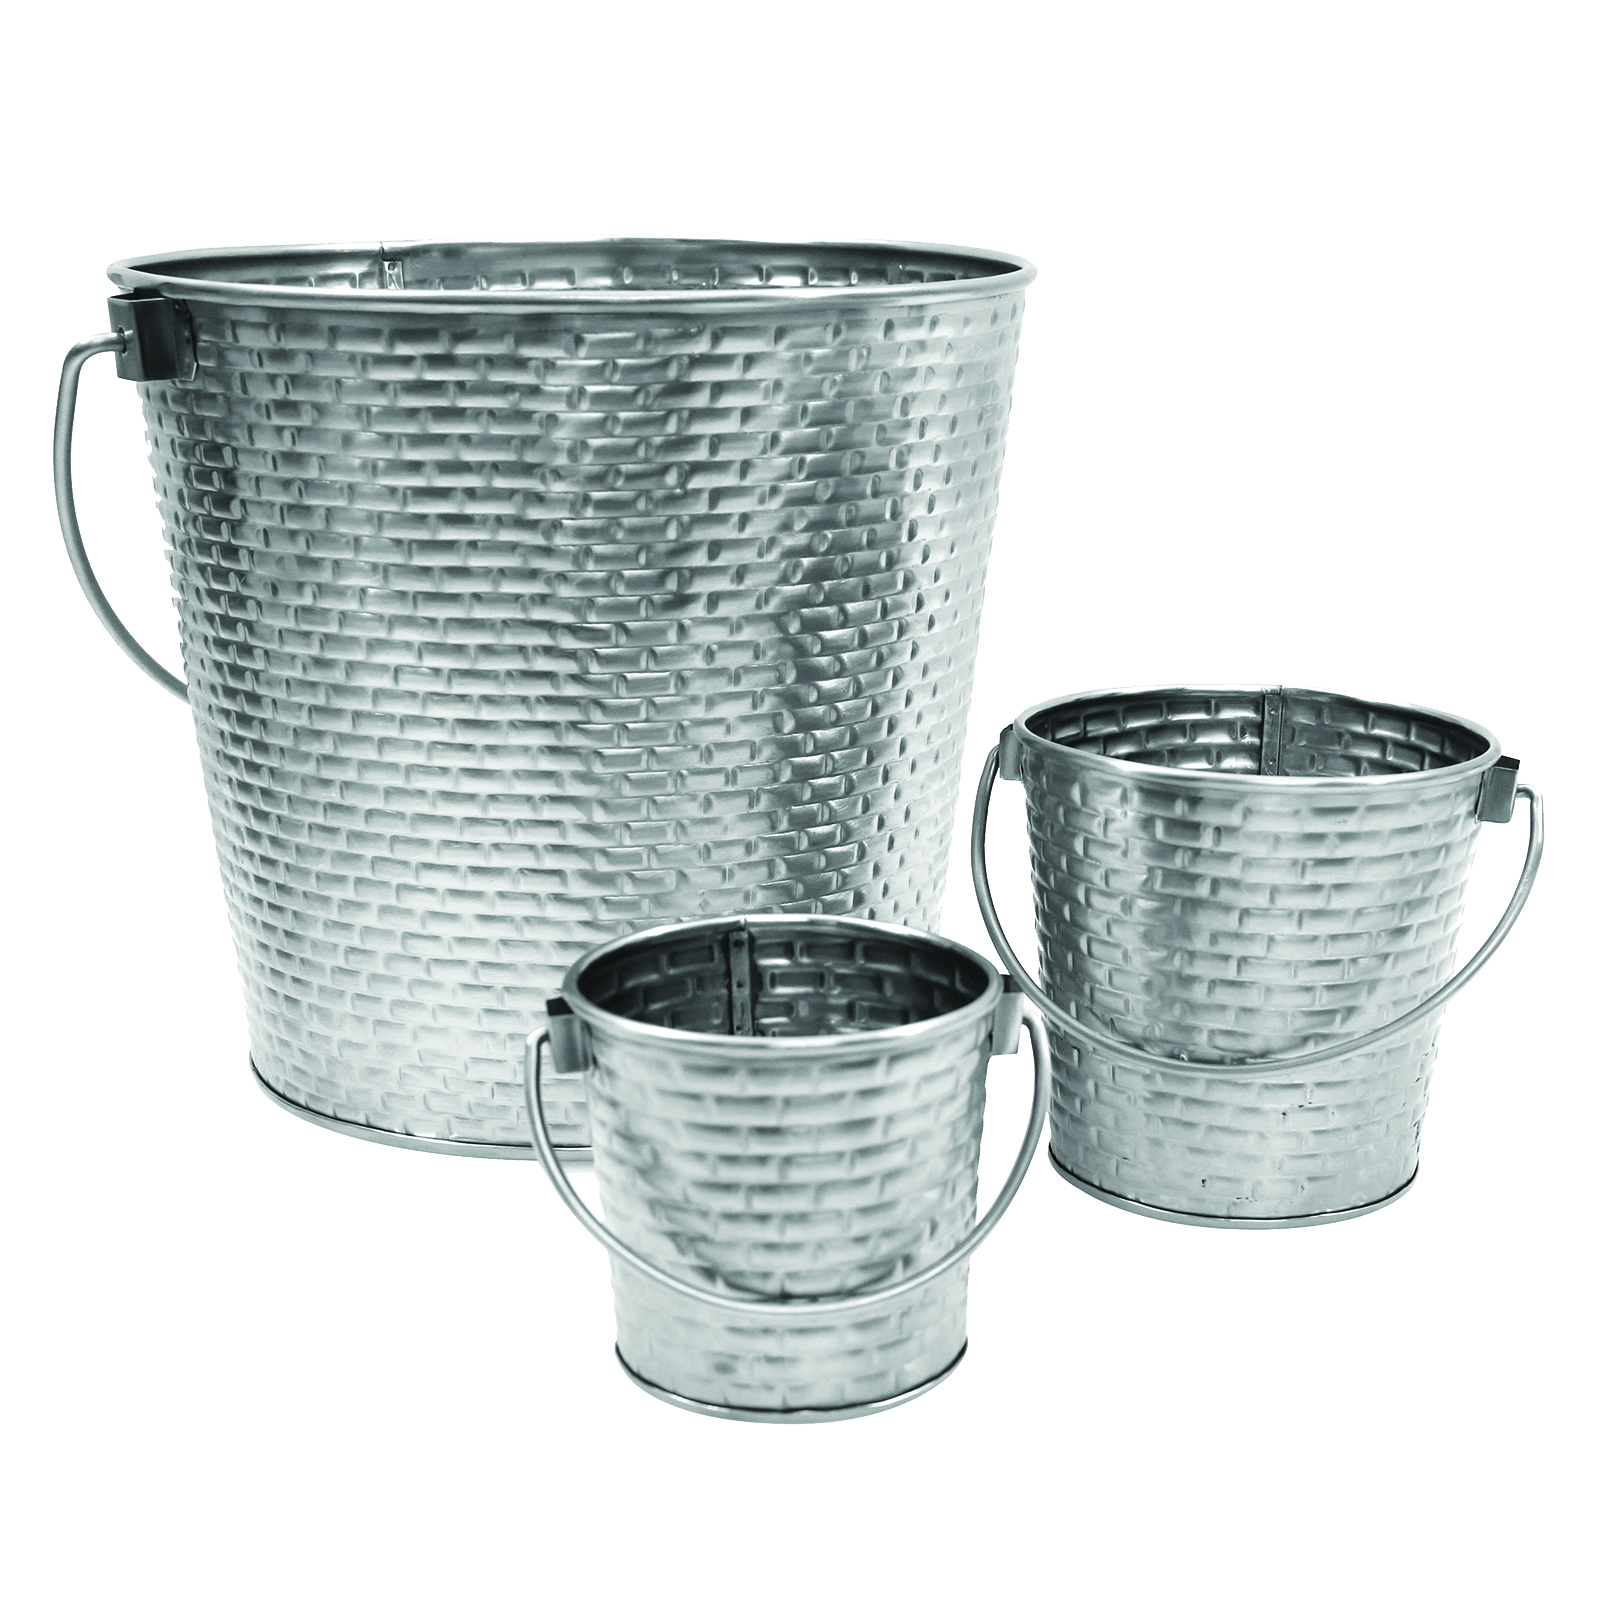 TableCraft Products GTSS44 serving pail